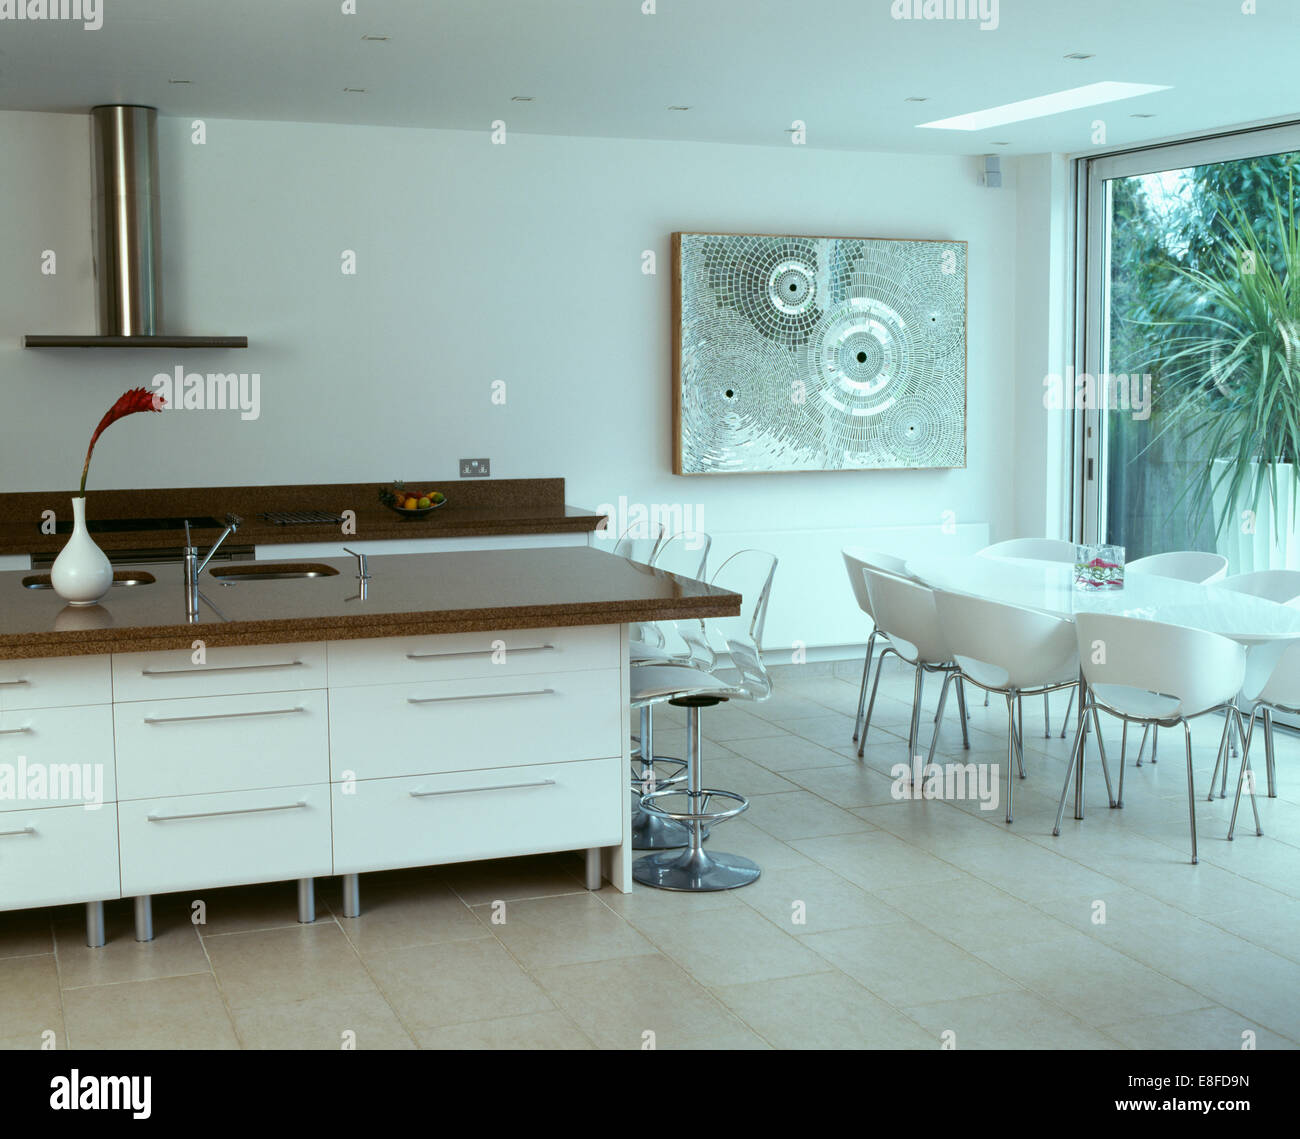 large open plan kitchen interior stockfotos large open plan kitchen interior bilder alamy. Black Bedroom Furniture Sets. Home Design Ideas